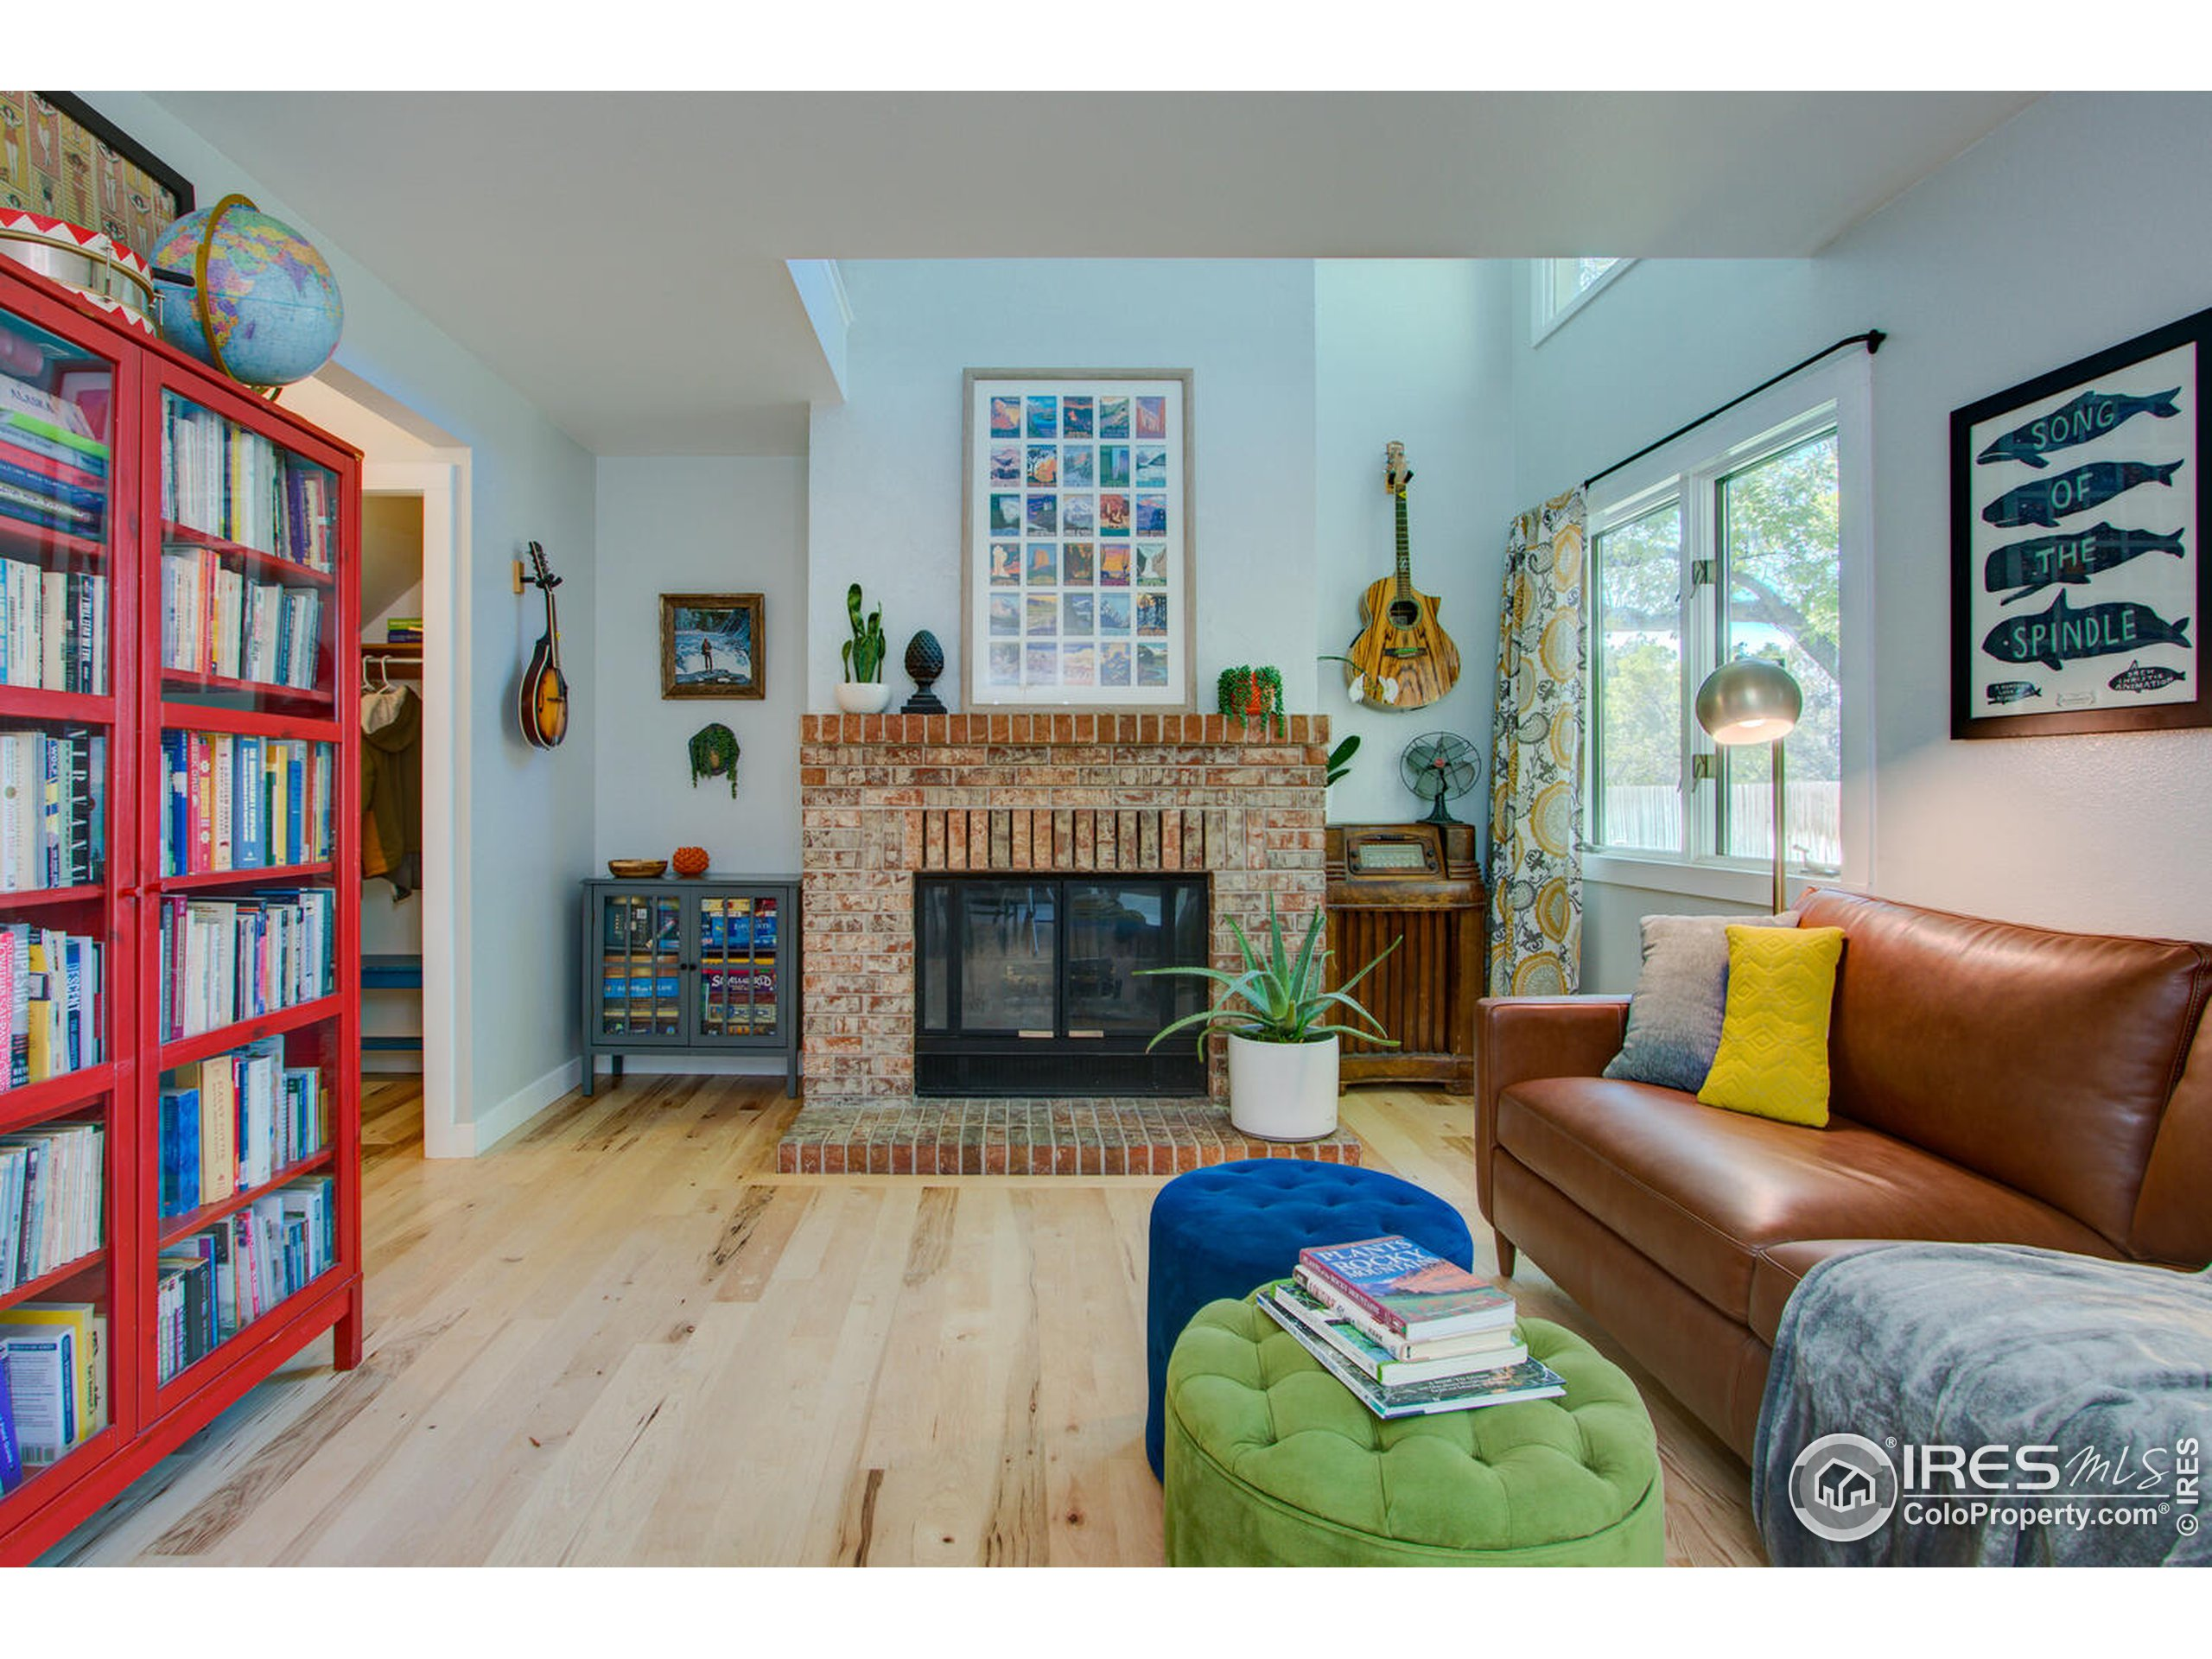 *All offers in Sat. Oct 3rd by 5PM MST. Seller to review + respond by Sun. Oct. 4th by 5PM MST. Right next to Spring Creek Trail -out your front door! Lives like a townhome -Modern Urban Remodel- Rare Prospect Springs Condo! New Roof, new hot water tank and cozy brick wood burning fireplace! Super low maintenance with the feel of one's own private yard. Solid Hickory plank floors and fresh kitchen remodel: Quartz countertops, stainless appliances + sink (gas slide in range), full subway splash, separate pantry, painted cabinetry and new interior paint + lighting. Convenient upper level laundry w/ newer W/D (all appliances included) Anderson windows, central AC + ceiling fans, Great outdoor living with both a front and backyard private patio! Oversized 1 car Garage is fully sheet rocked w/ opener + just steps across the front patio - easy access. Added storage by front door. Convenient access to - Old Town, UC Health PVH, I-25, Mid-town and Genesis Health Club, and Shopping)